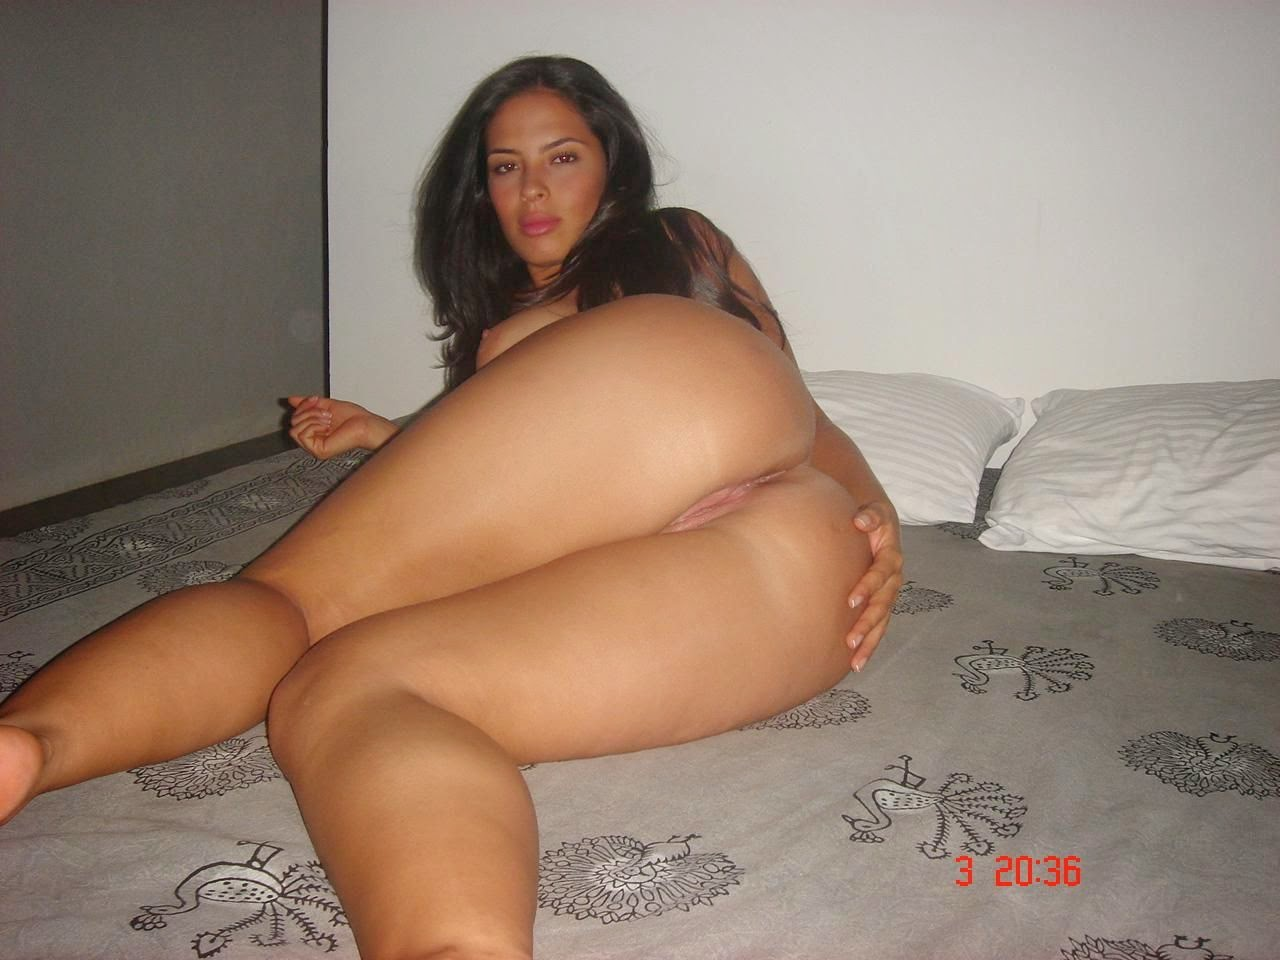 ver vidio porno fotos follando